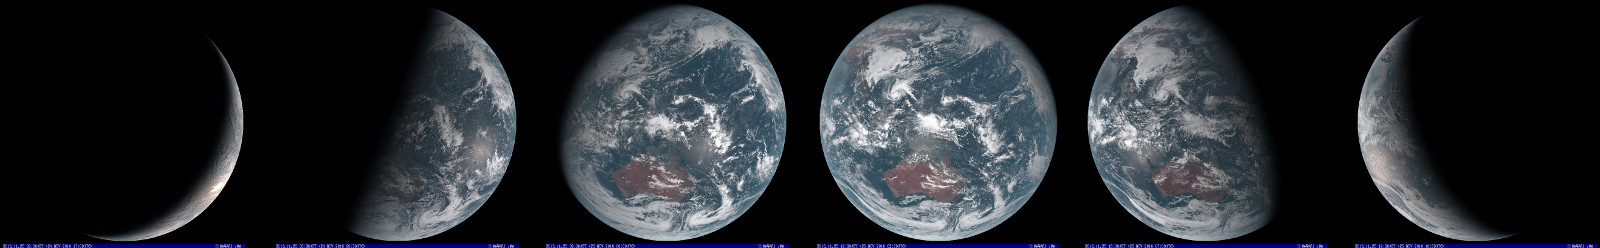 ⇒ Real-Color images of the earth from the satellite Himawari (JMA)